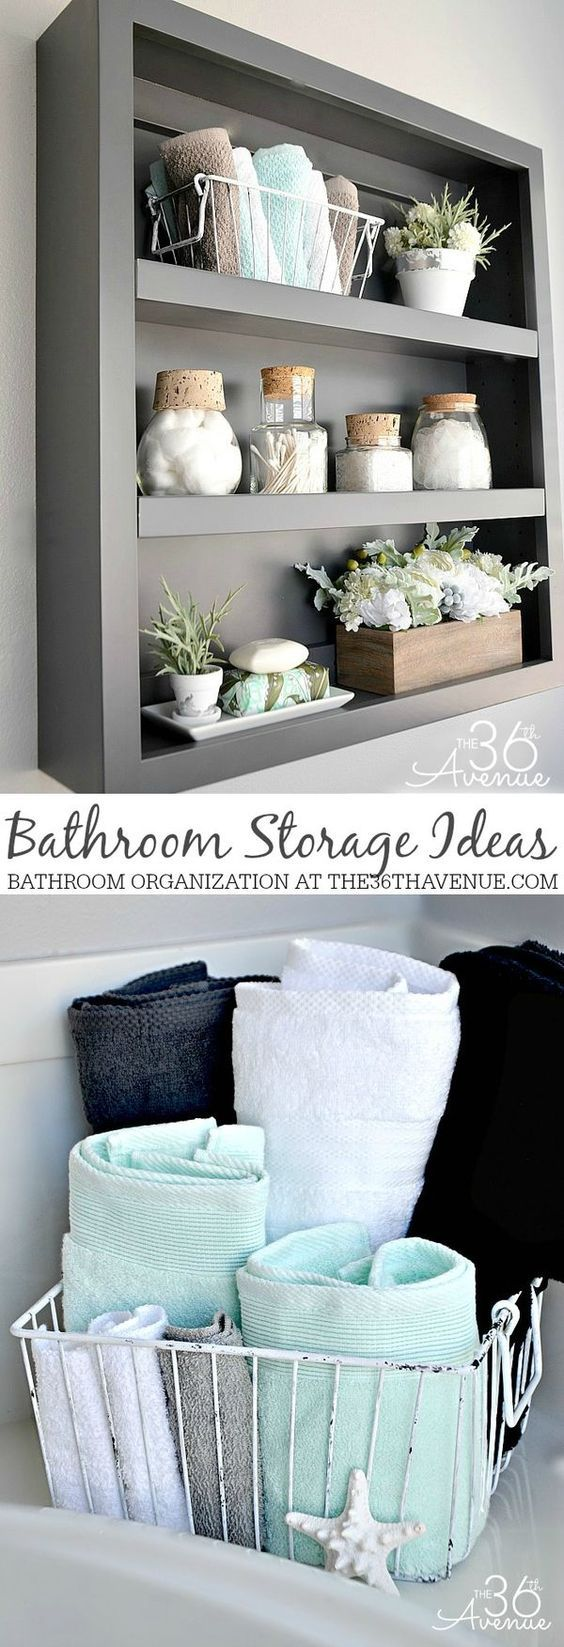 Spa Like Bathroom Decorating Ideas Part - 35: Bathroom Storage Organization Ideas